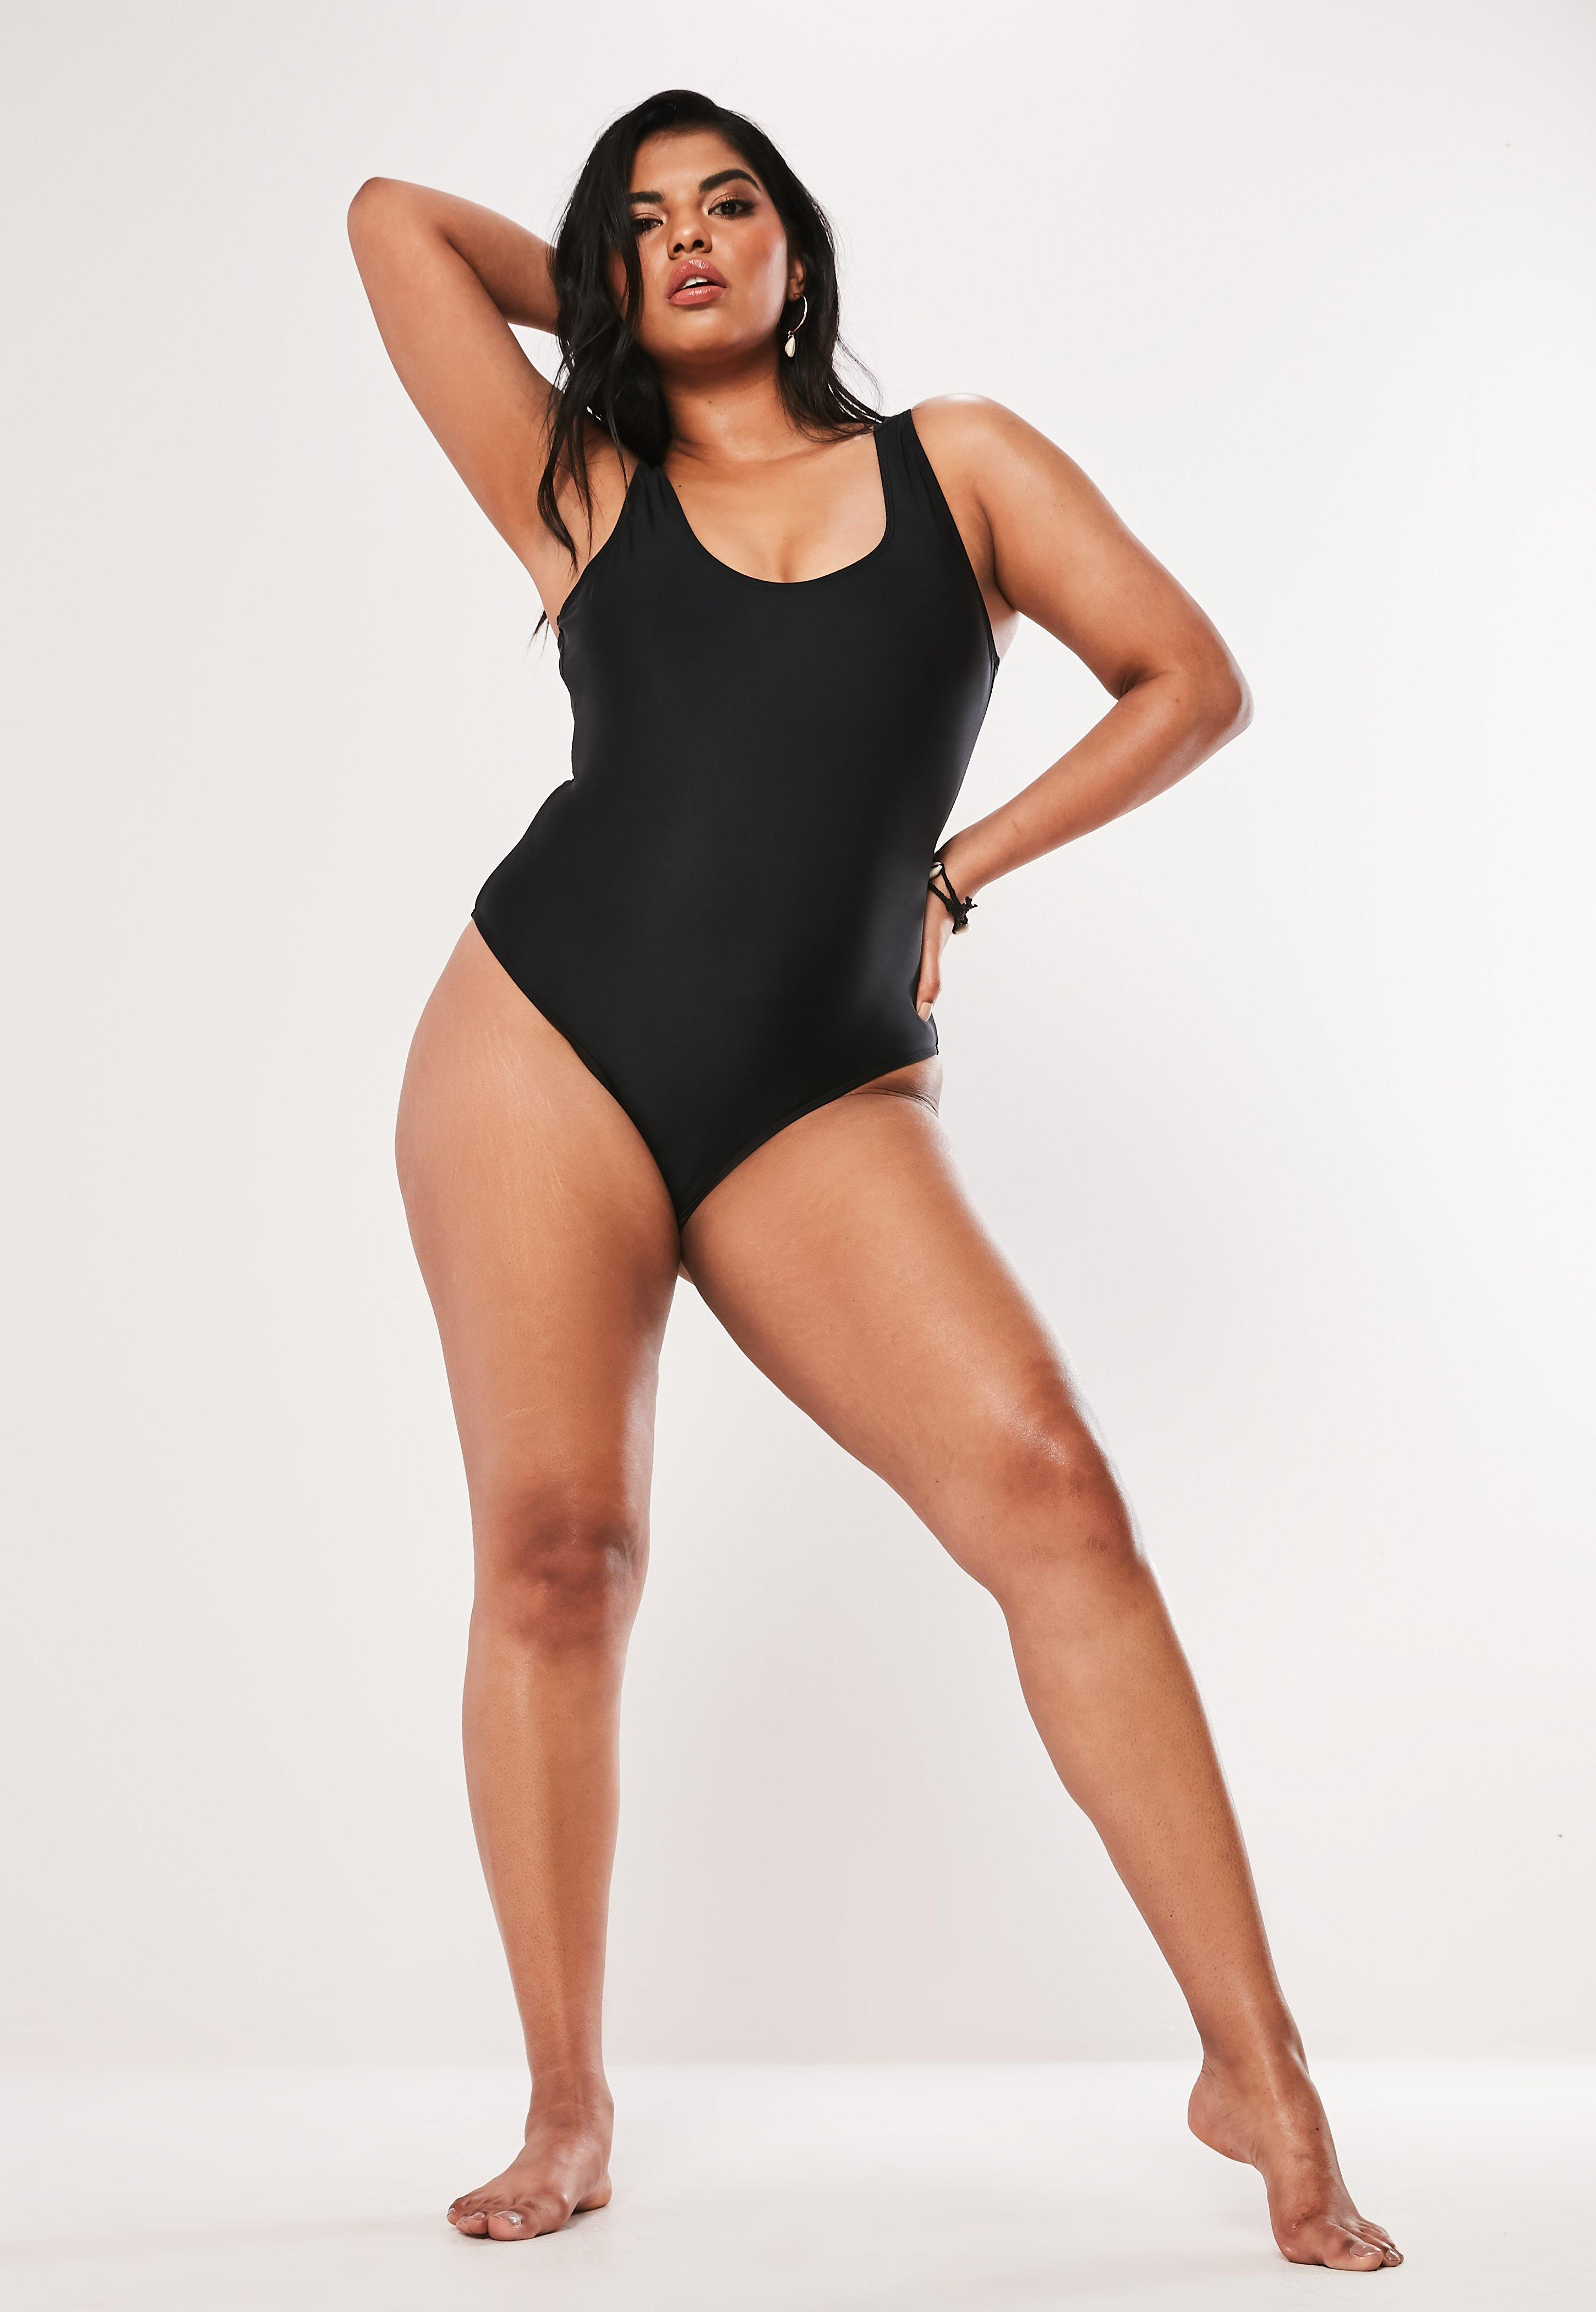 bc7e719a46d Missguided Plus Size Black Scoop Neck High Leg Swimsuit in Black - Lyst